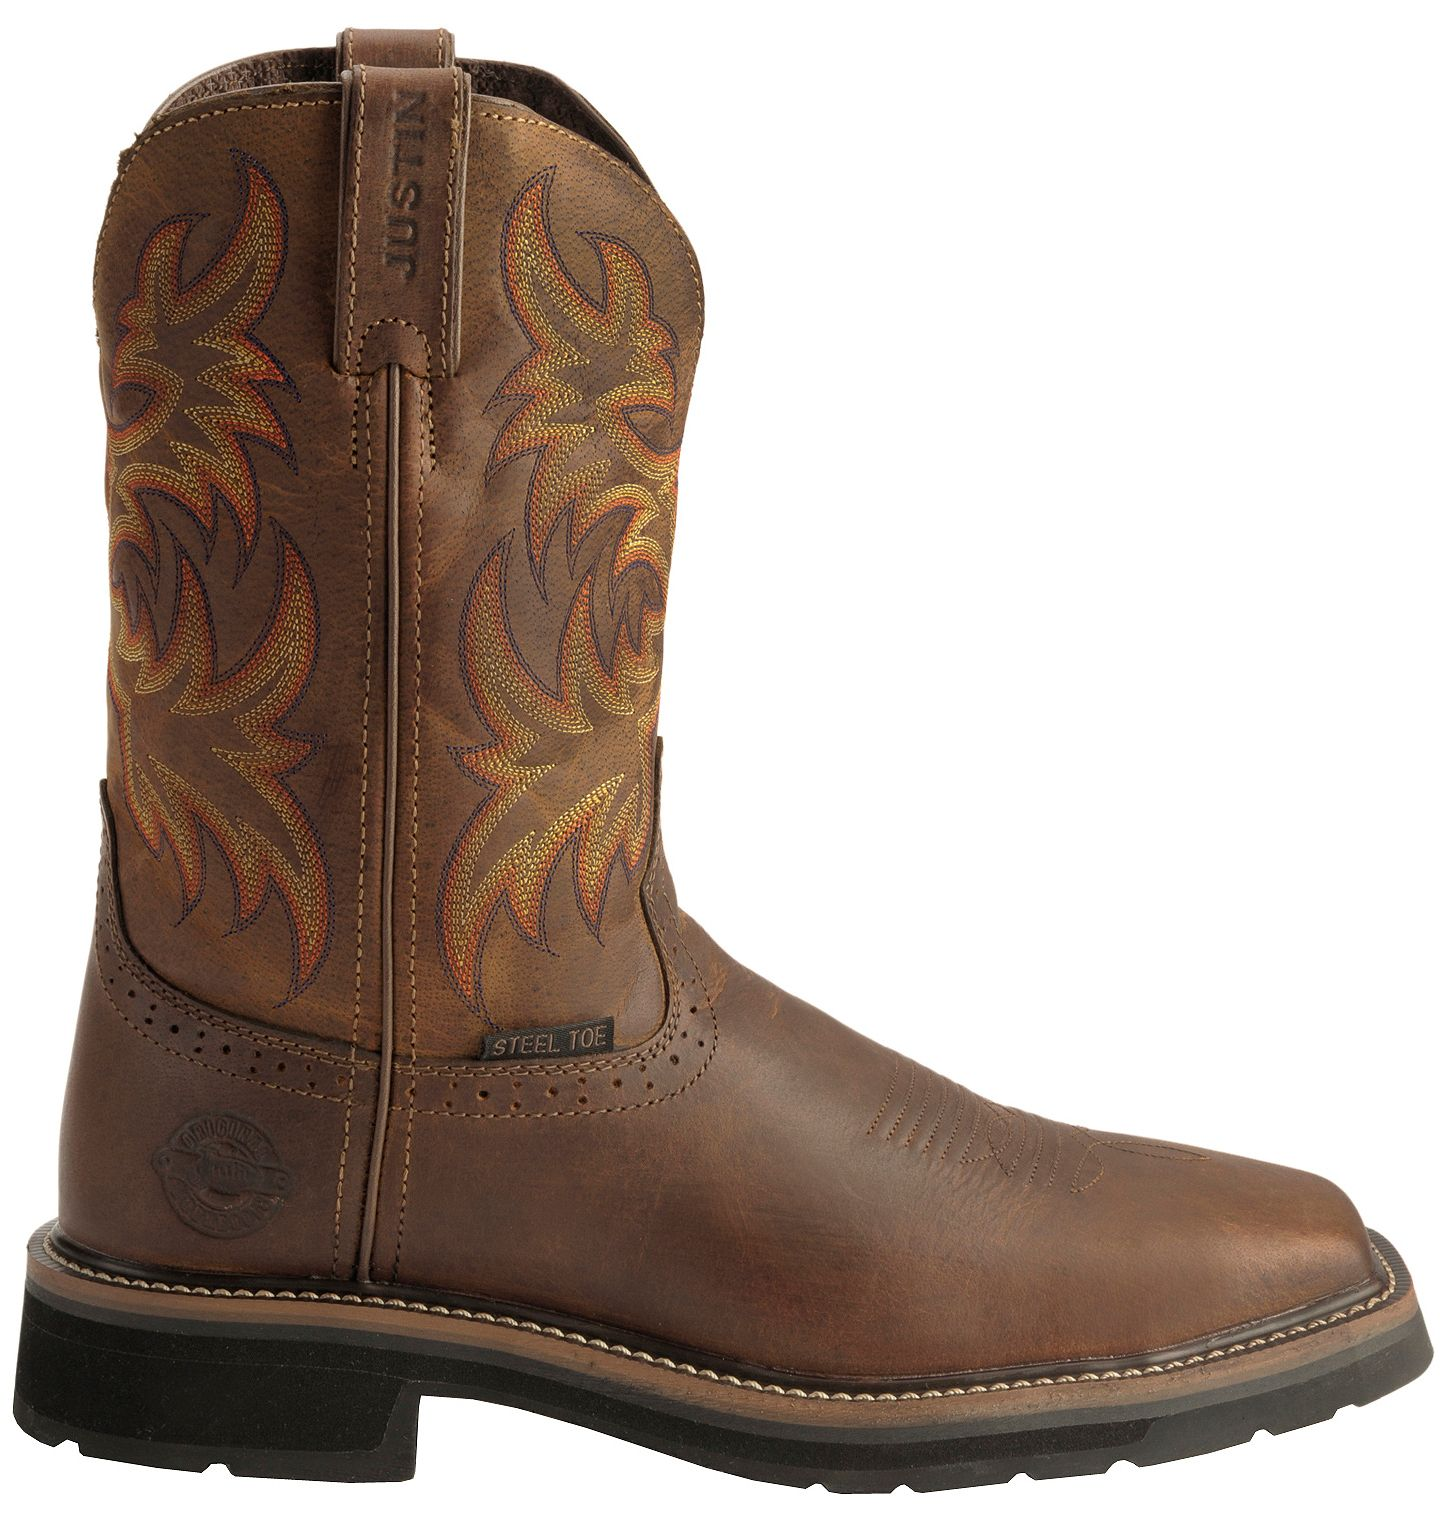 52a42a9f0c2 Justin Boots Sheplers - Ivoiregion